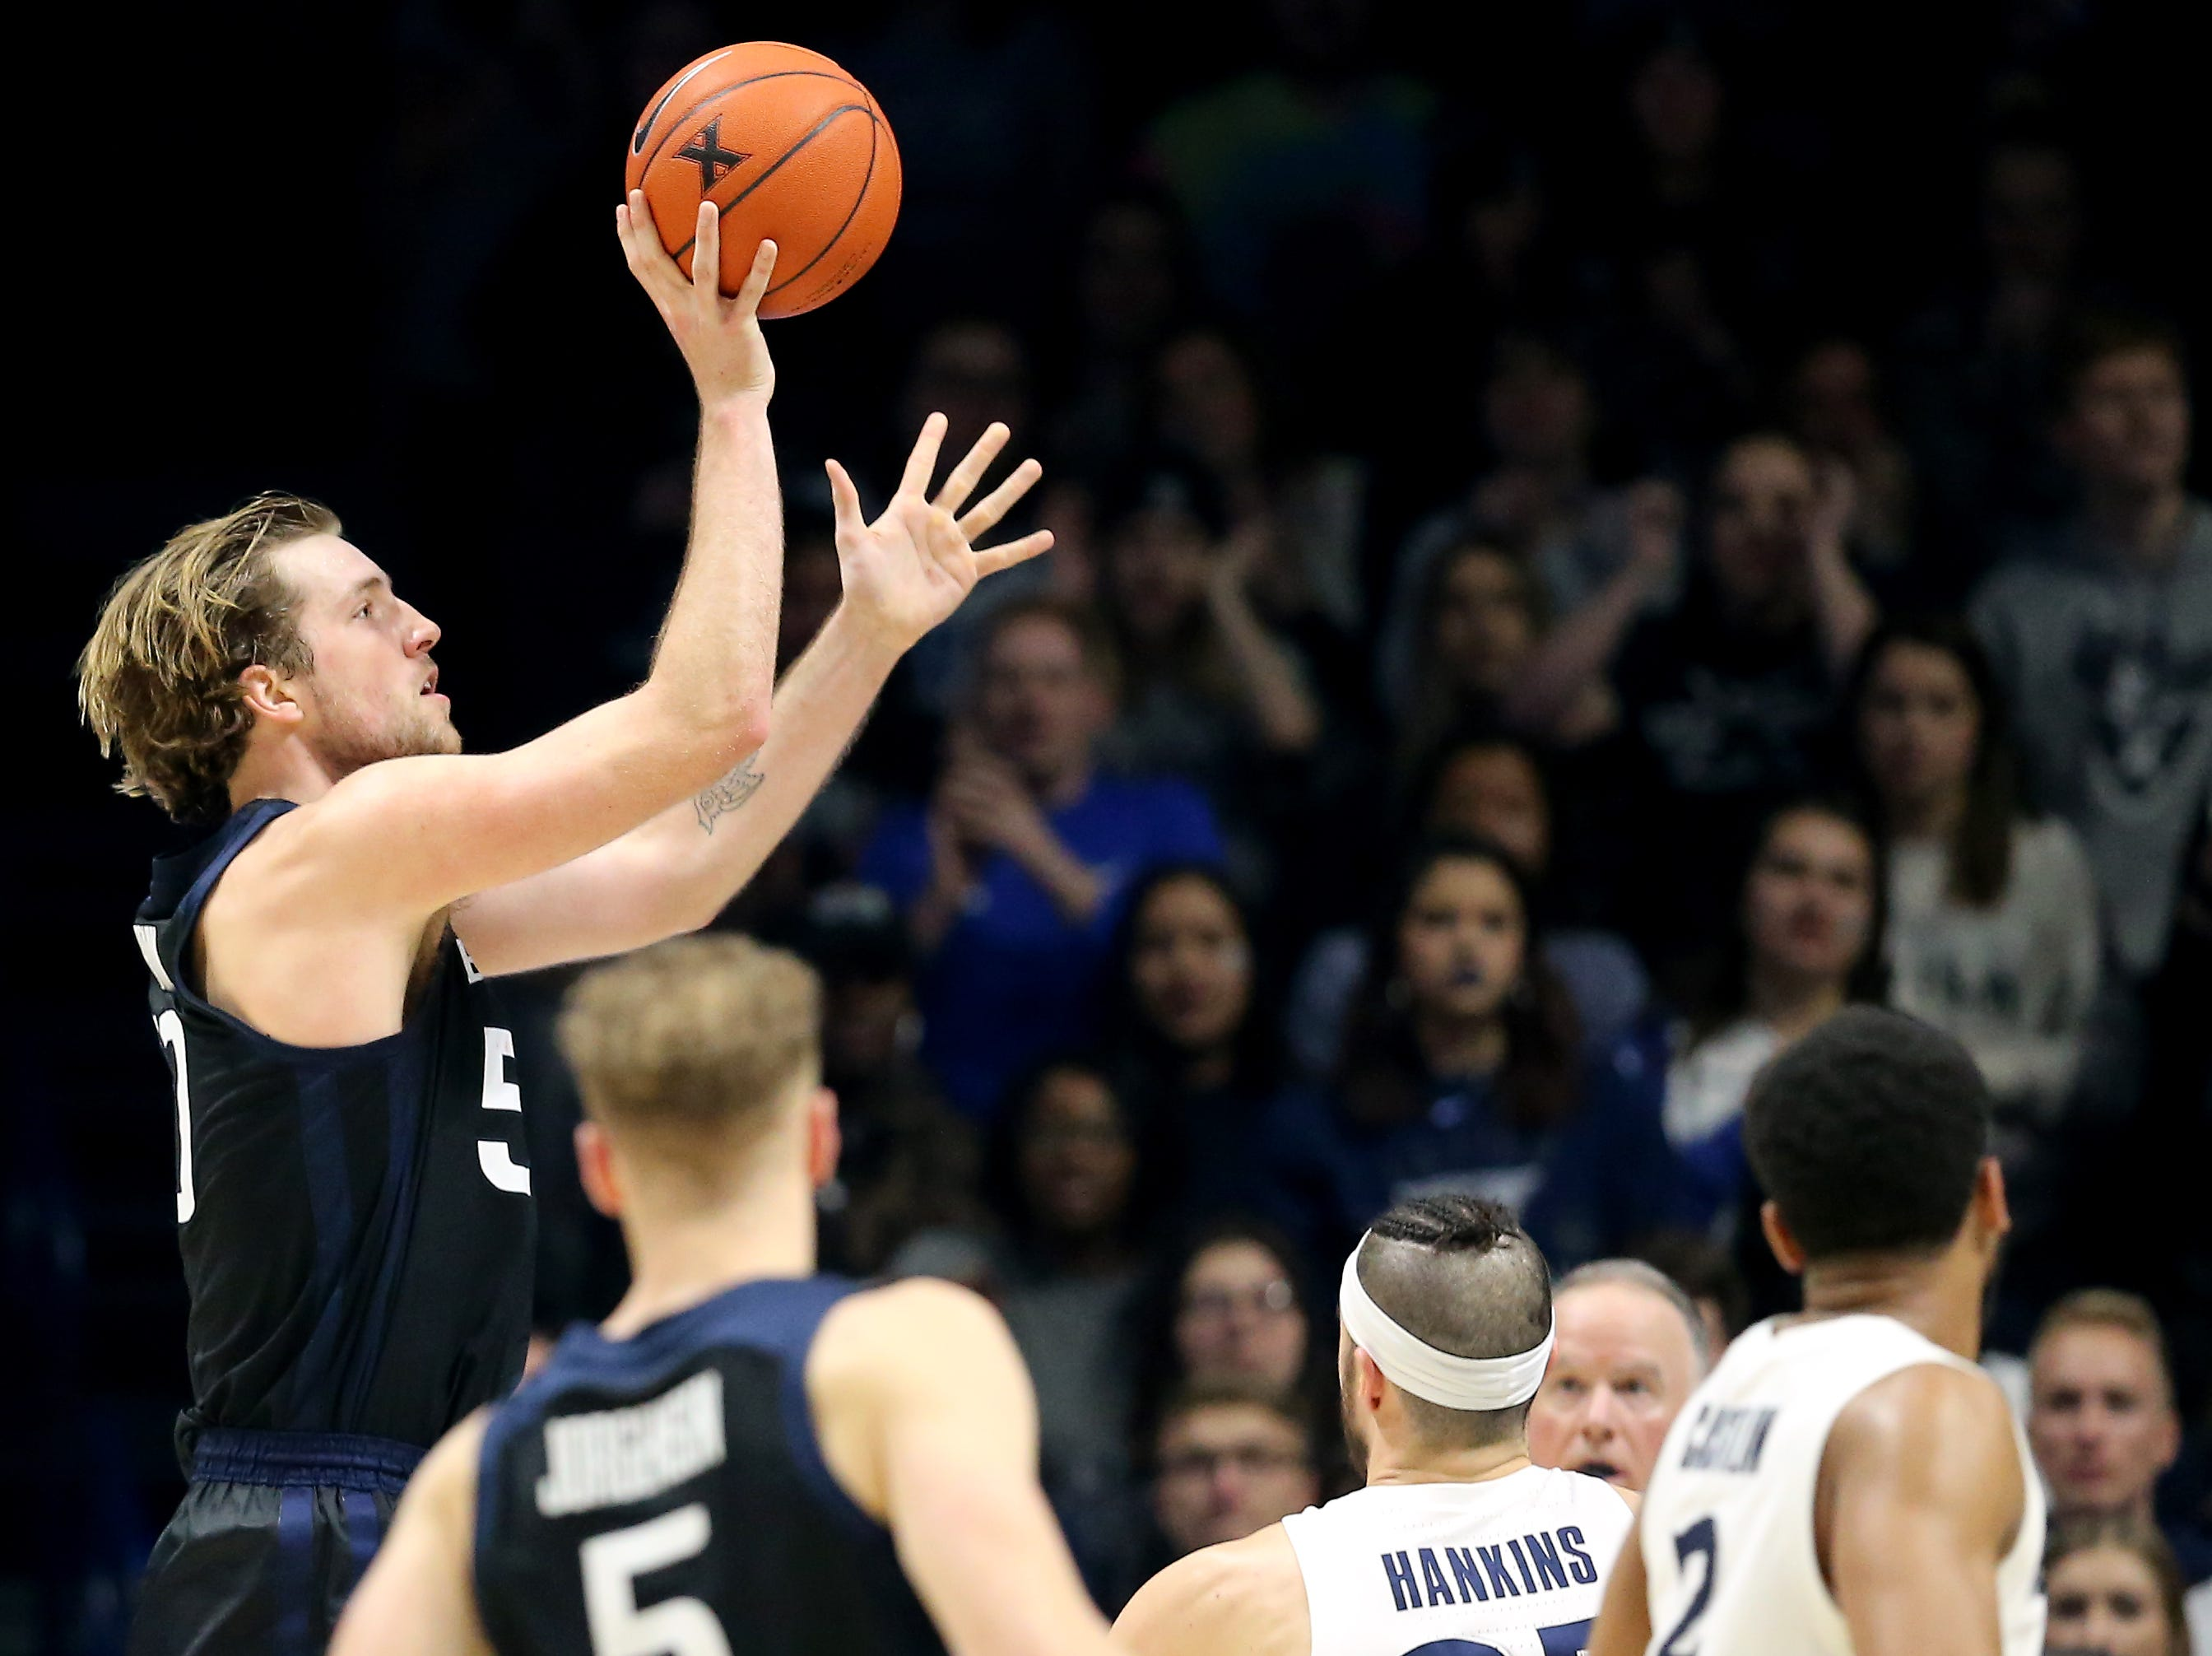 Butler Bulldogs forward Joey Brunk (50) rises for a shot over Xavier Musketeers forward Zach Hankins (35) in the second half of an NCAA college basketball game, Sunday, Jan. 13, 2019, at Cintas Center in Cincinnati. Xavier Musketeers won 70-69.